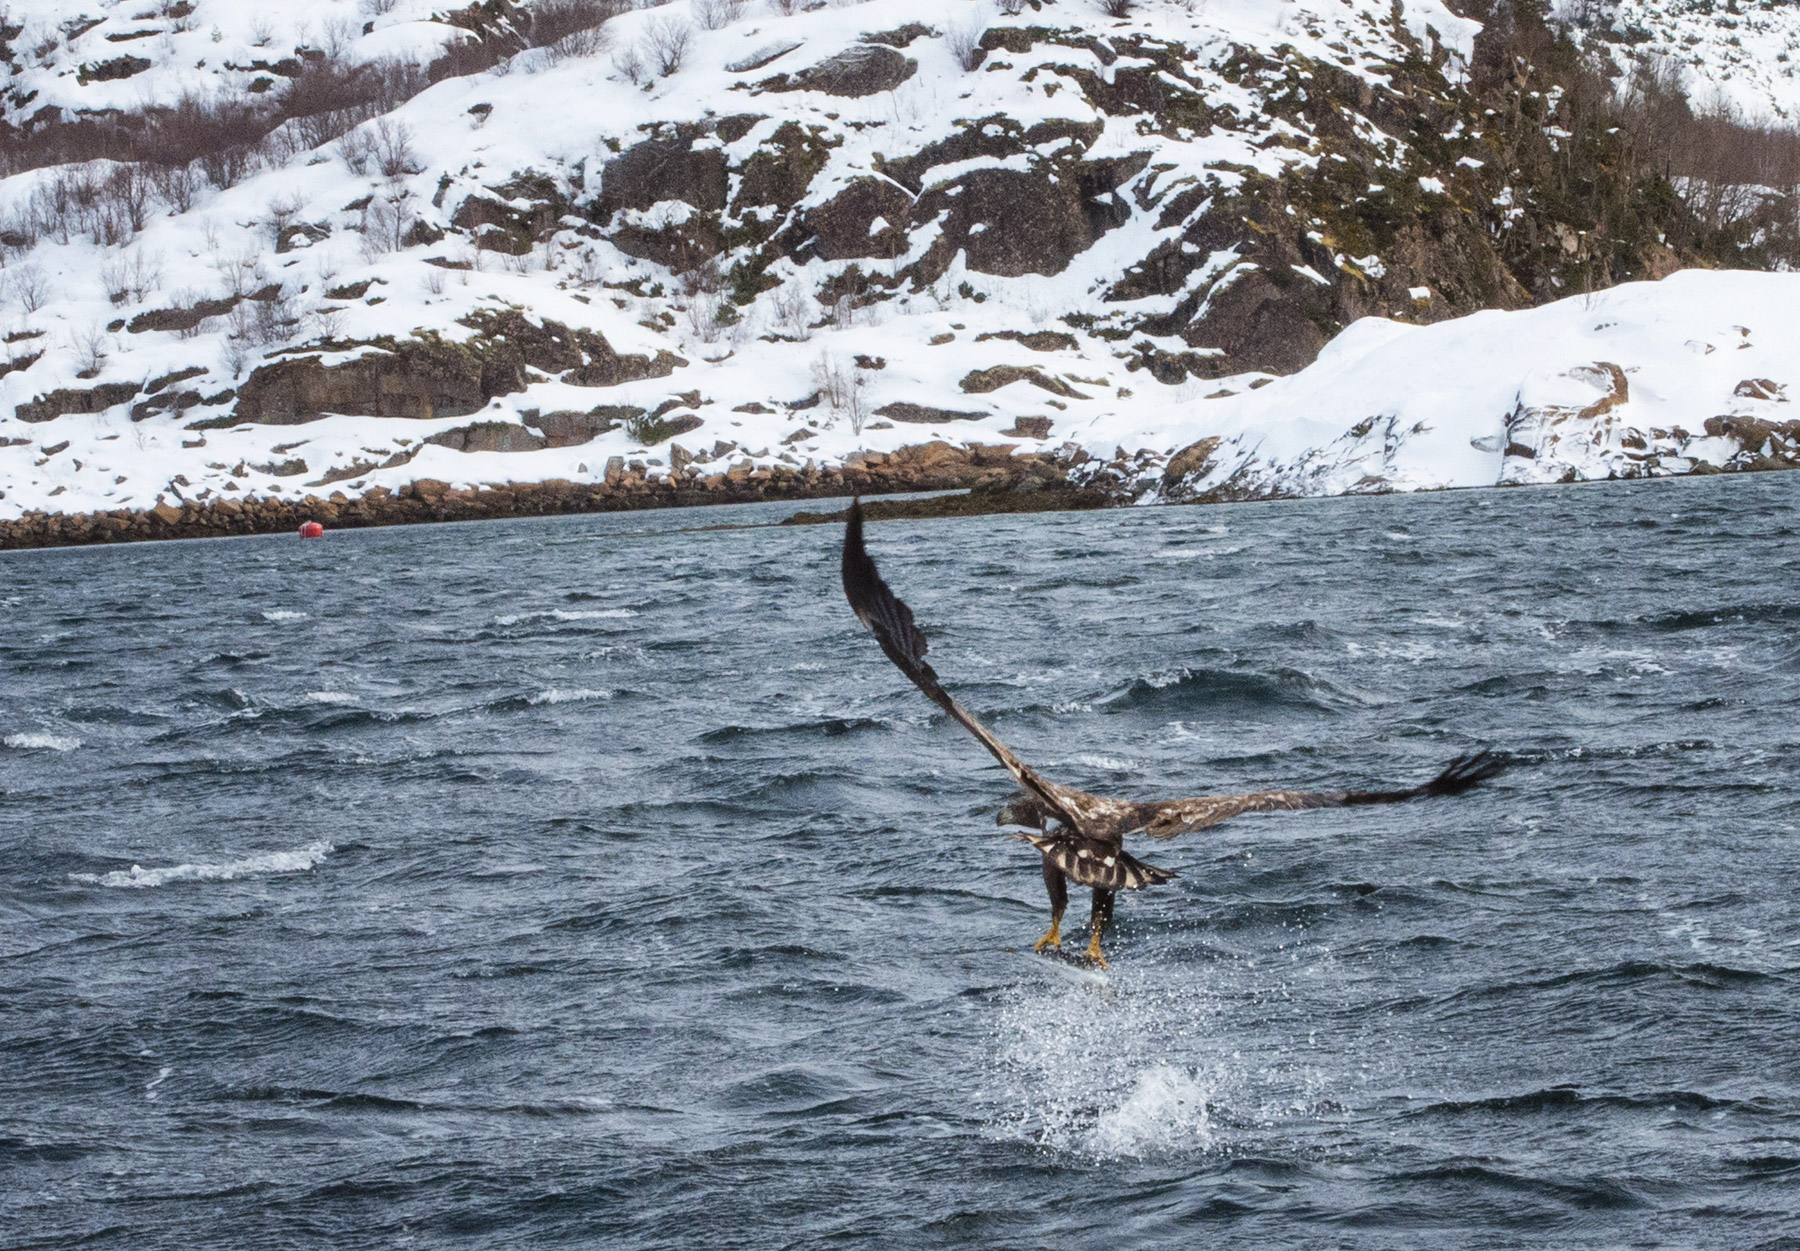 Eagle swooping over water